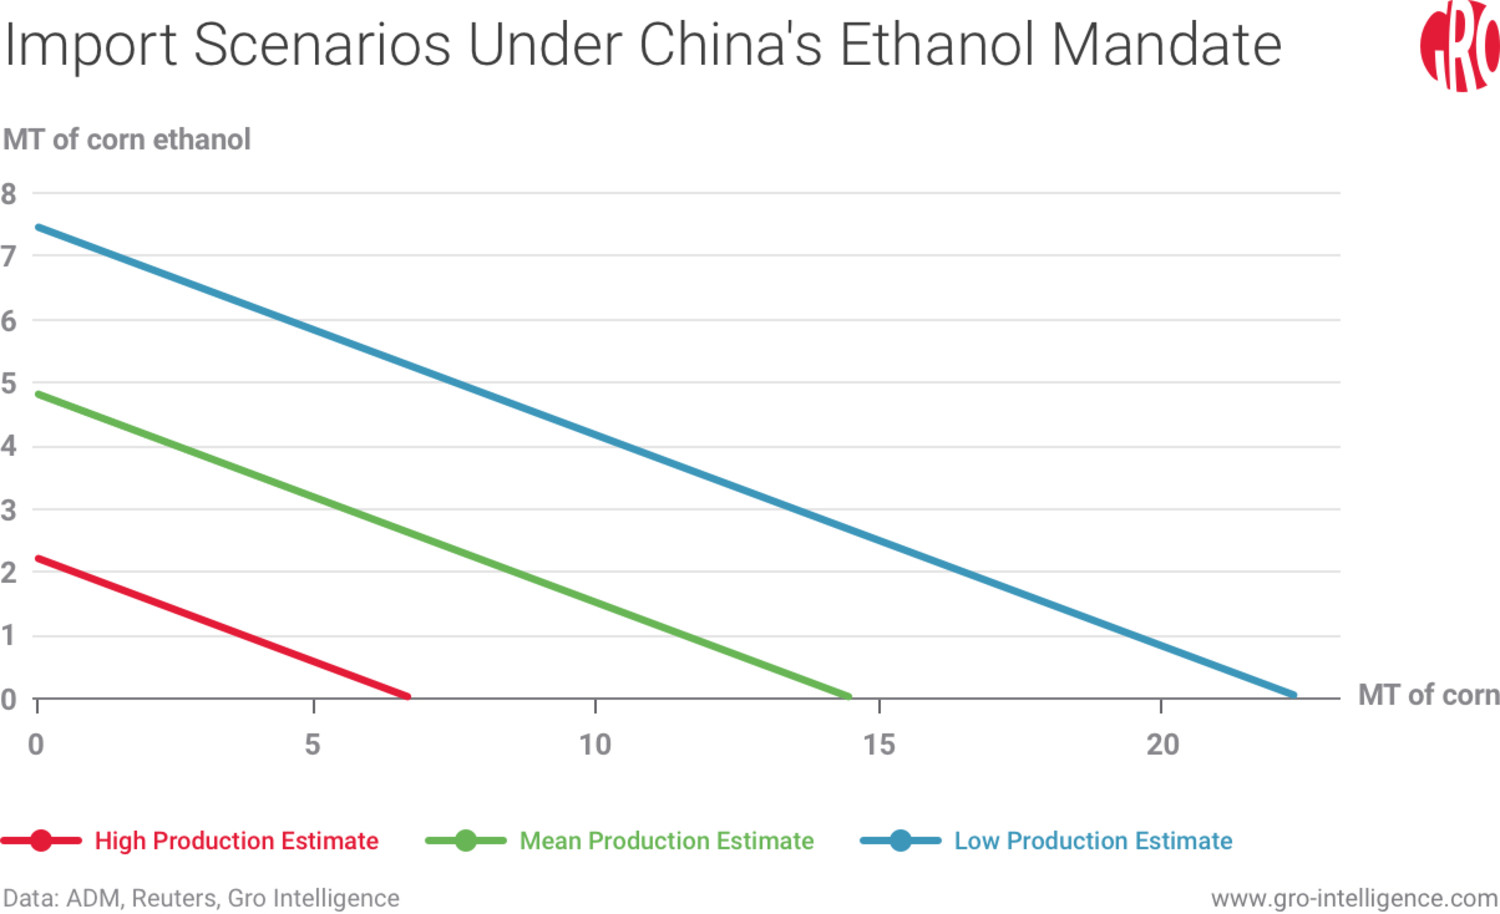 Import Scenarios Under China's Ethanol Mandate